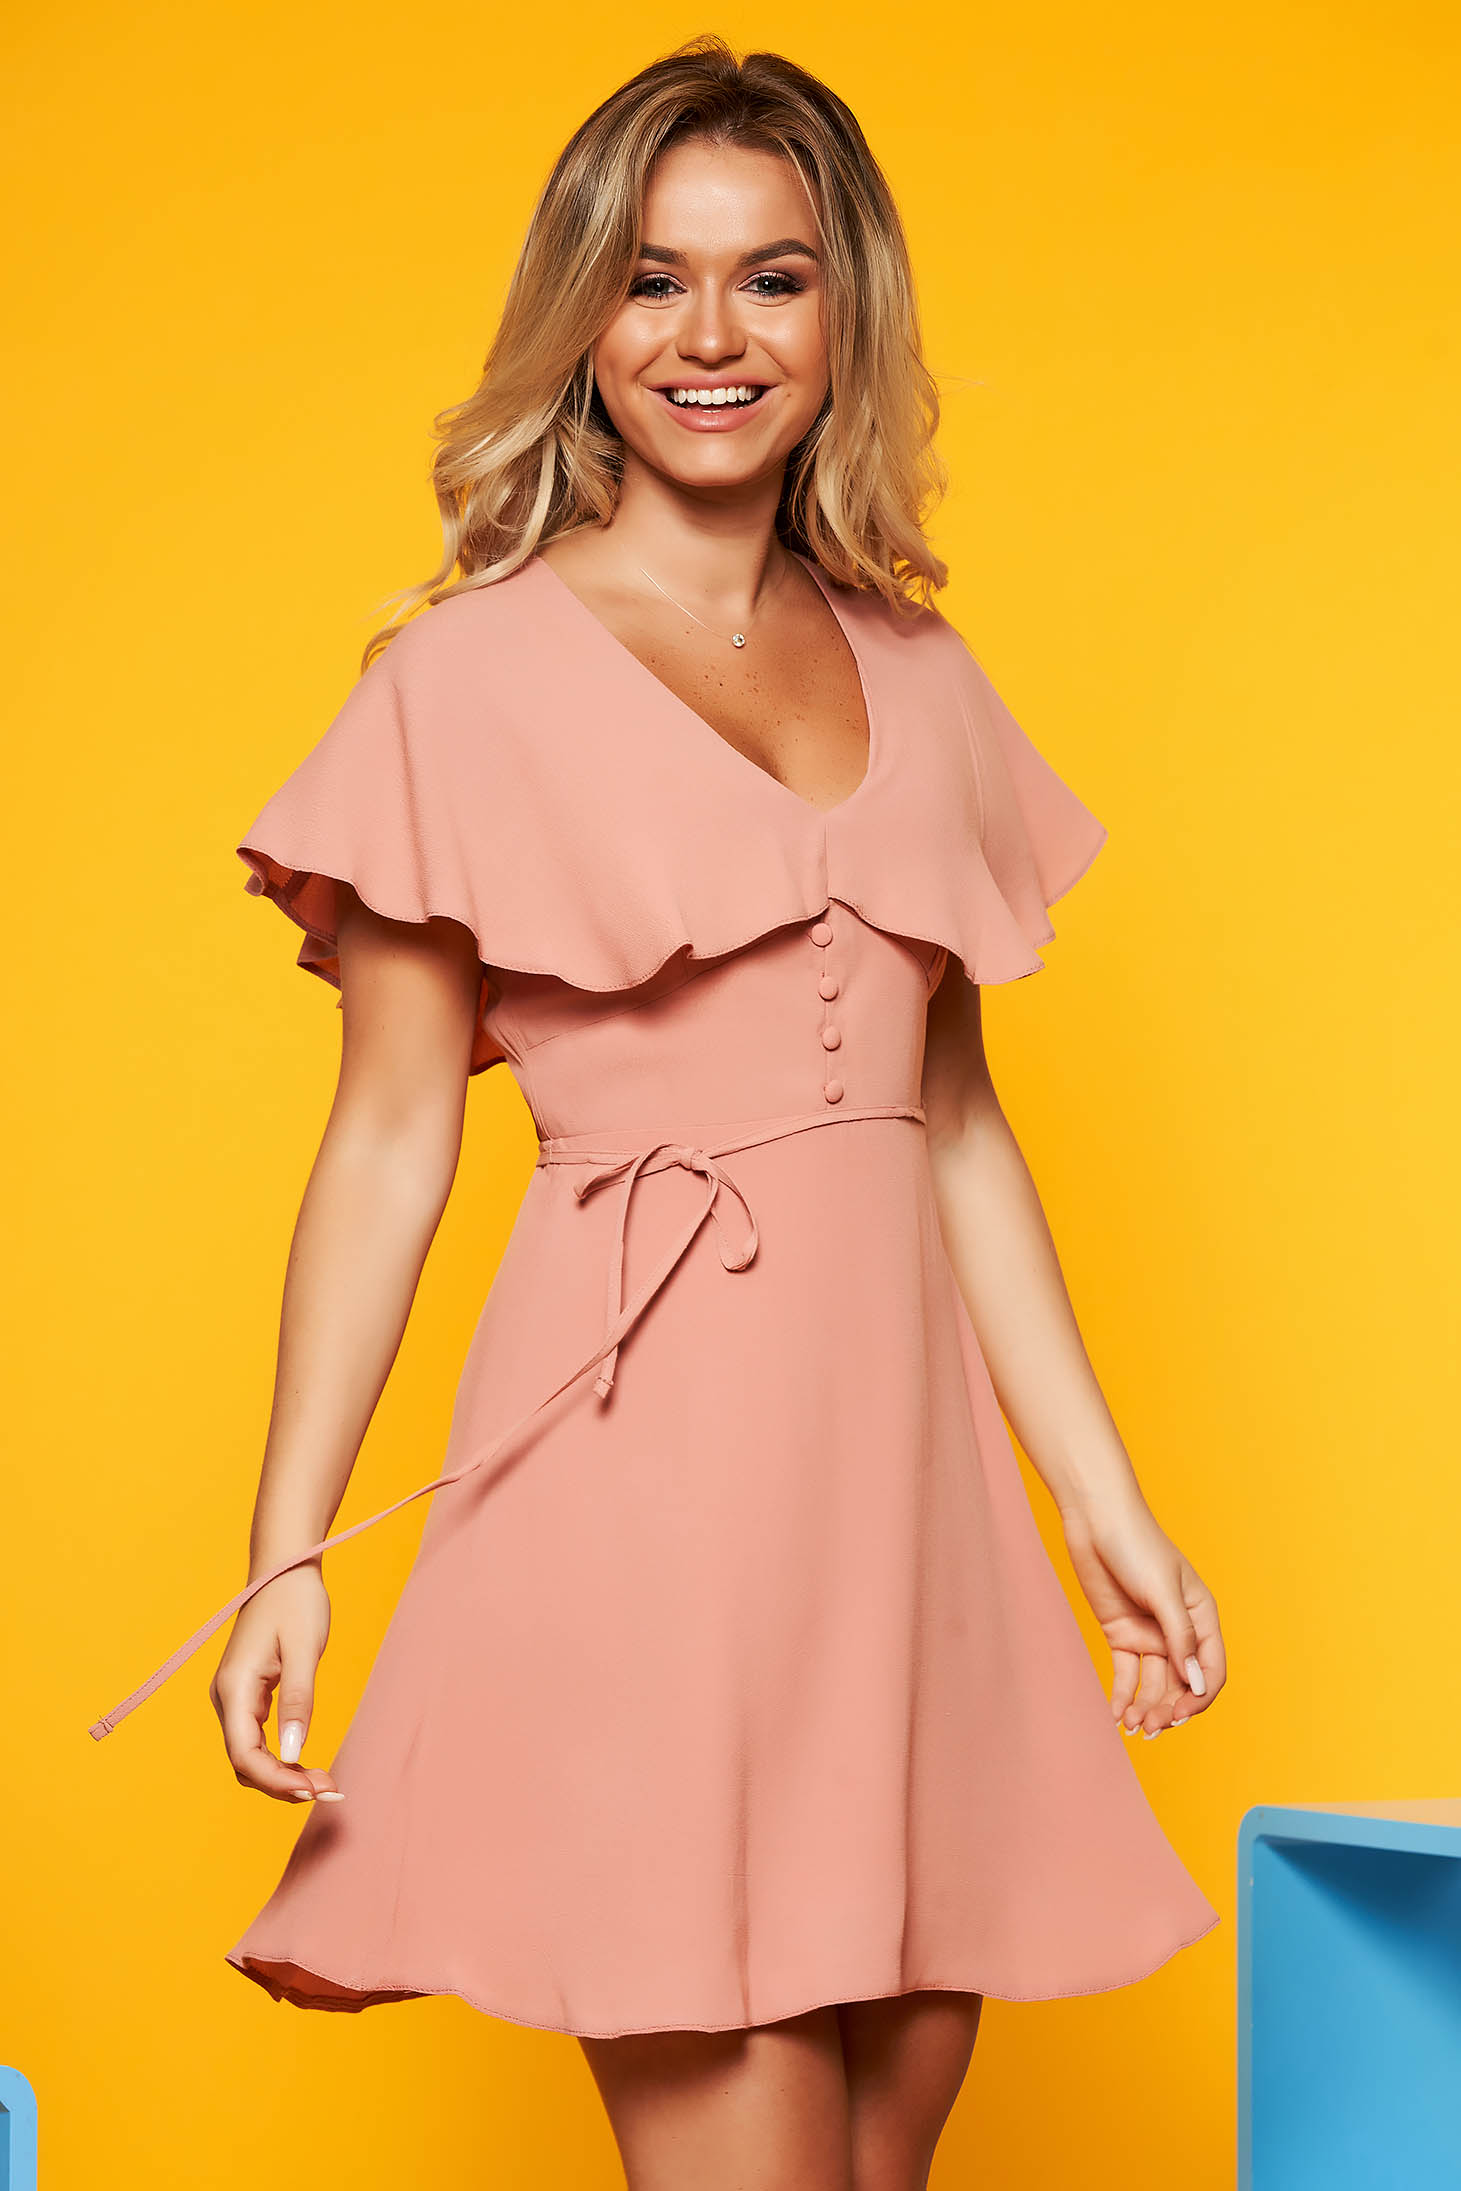 Bricky dress a-line with a cleavage short cut wrinkled material is fastened around the waist with a ribbon daily